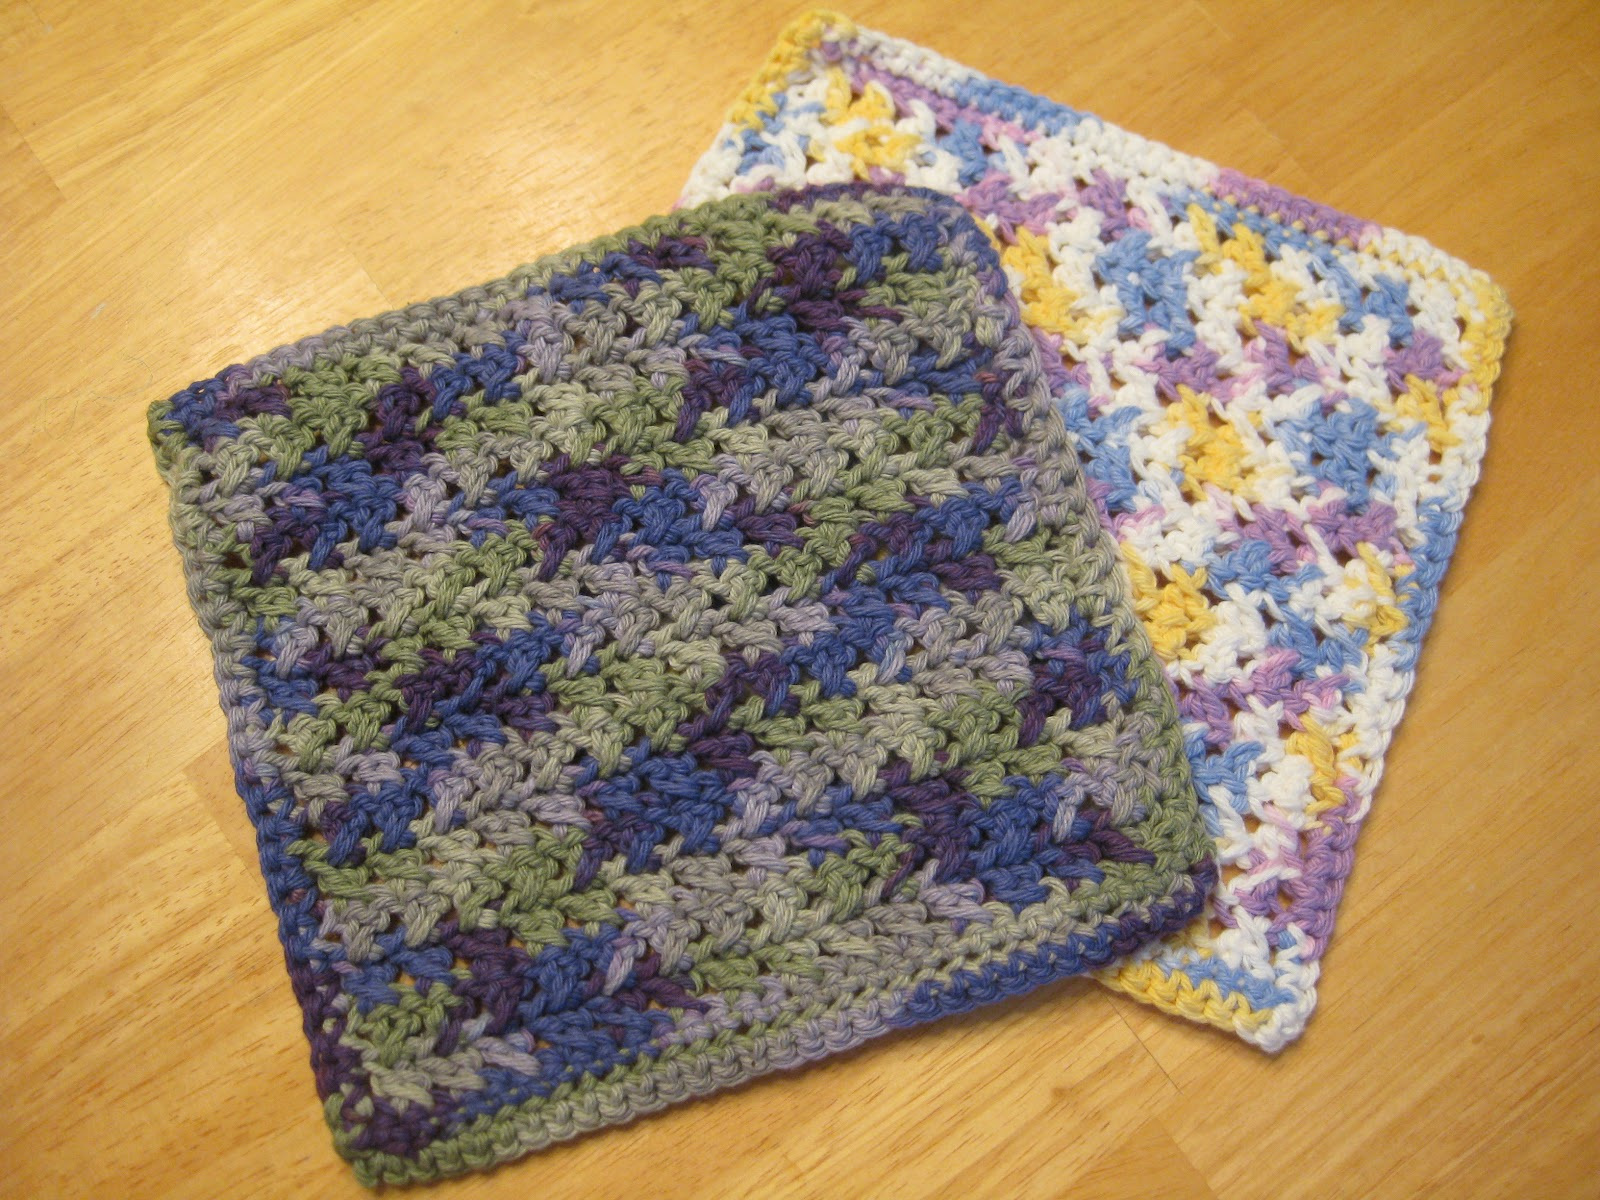 Crochet Stitches Dishcloths : FREE DISHCLOTH CROCHET PATTERNS - Easy Crochet Patterns